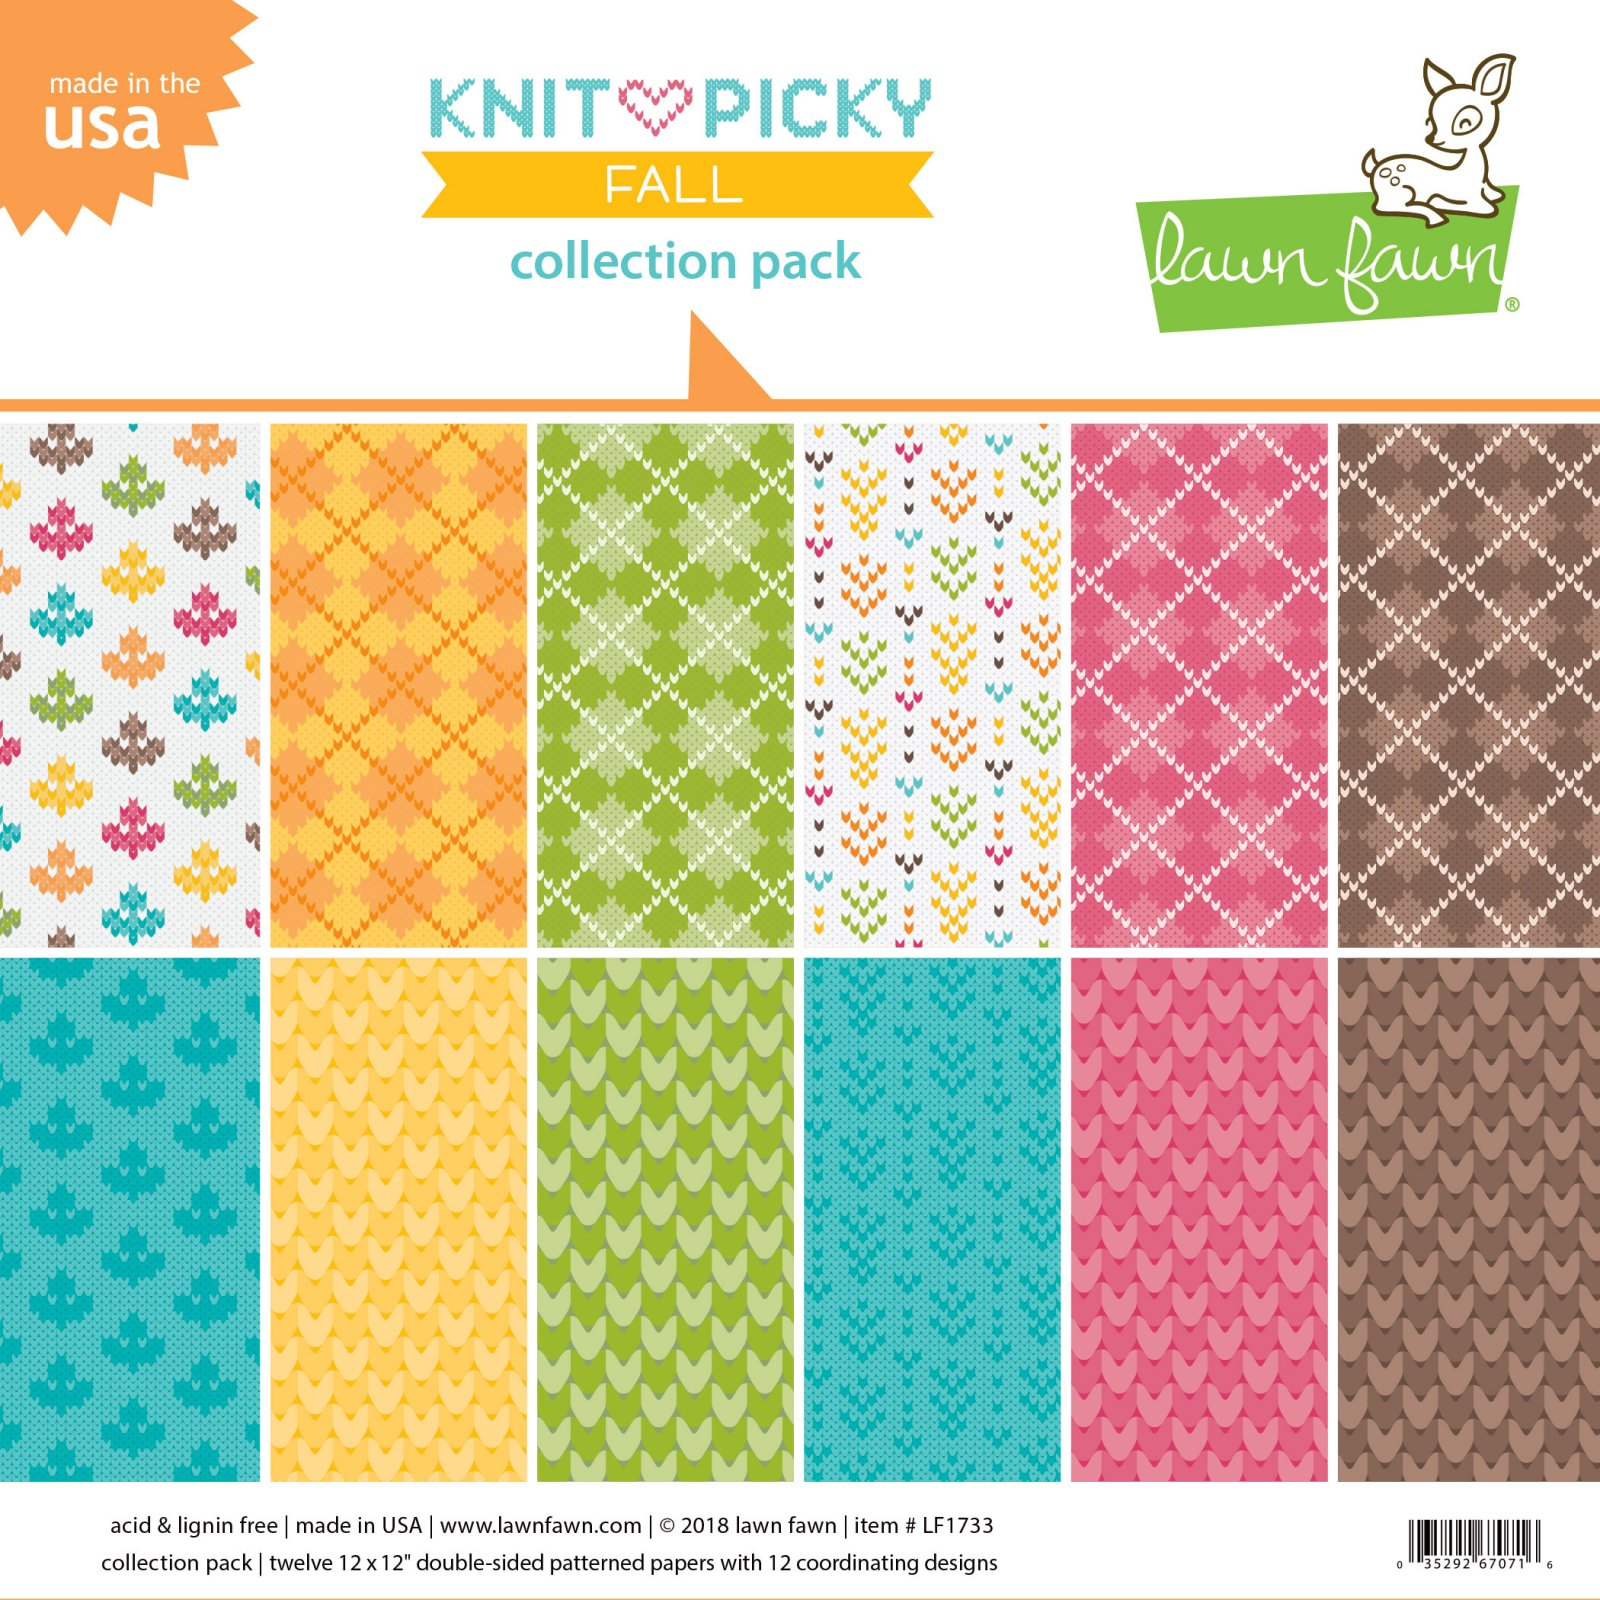 Lawn Fawn - Knit Picky Fall Collection - 12x12 Collection Pack